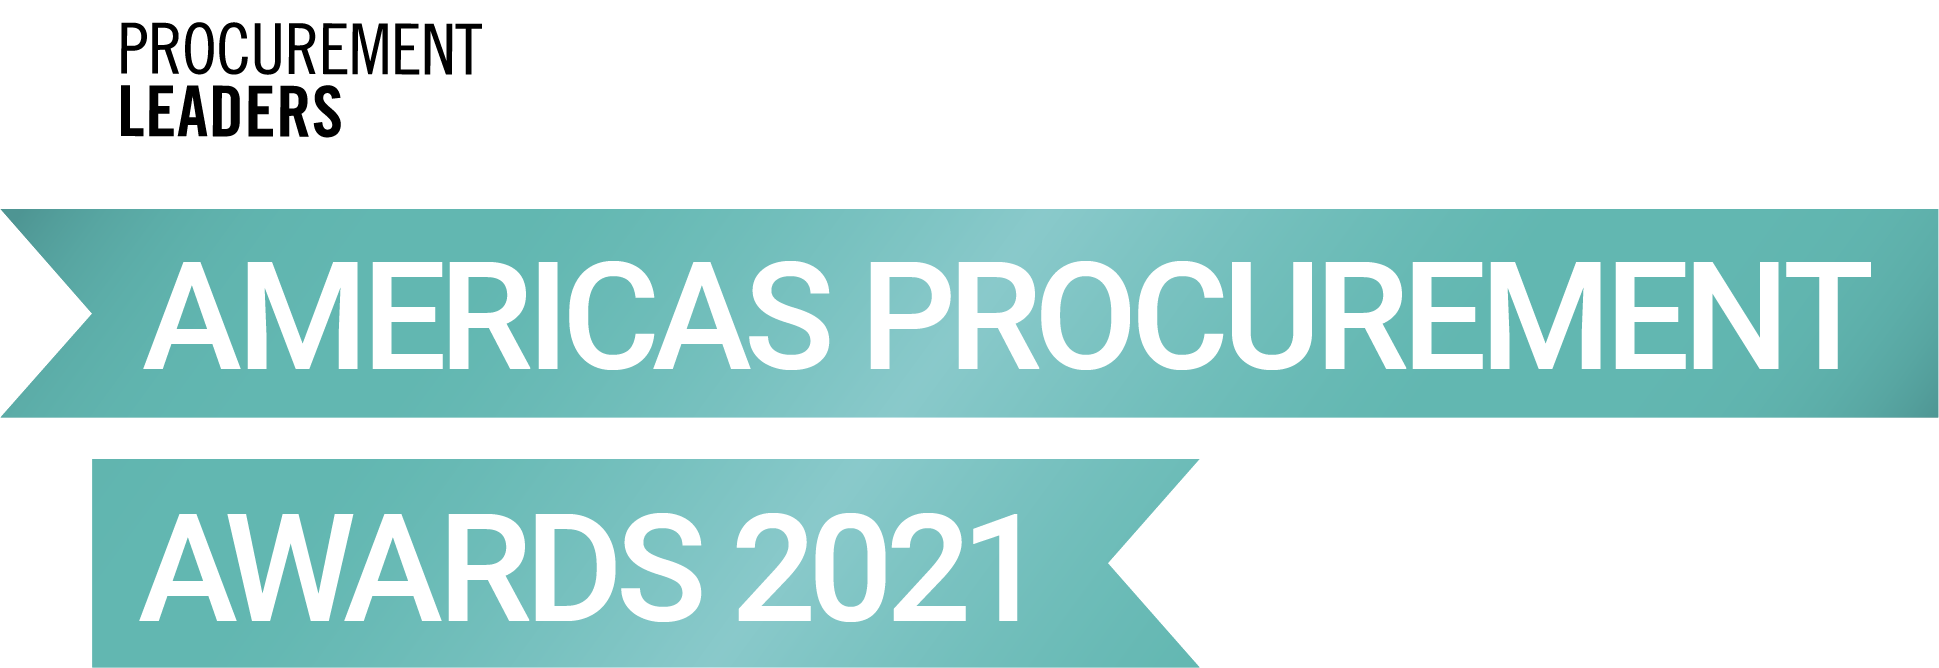 Americas Procurement Awards